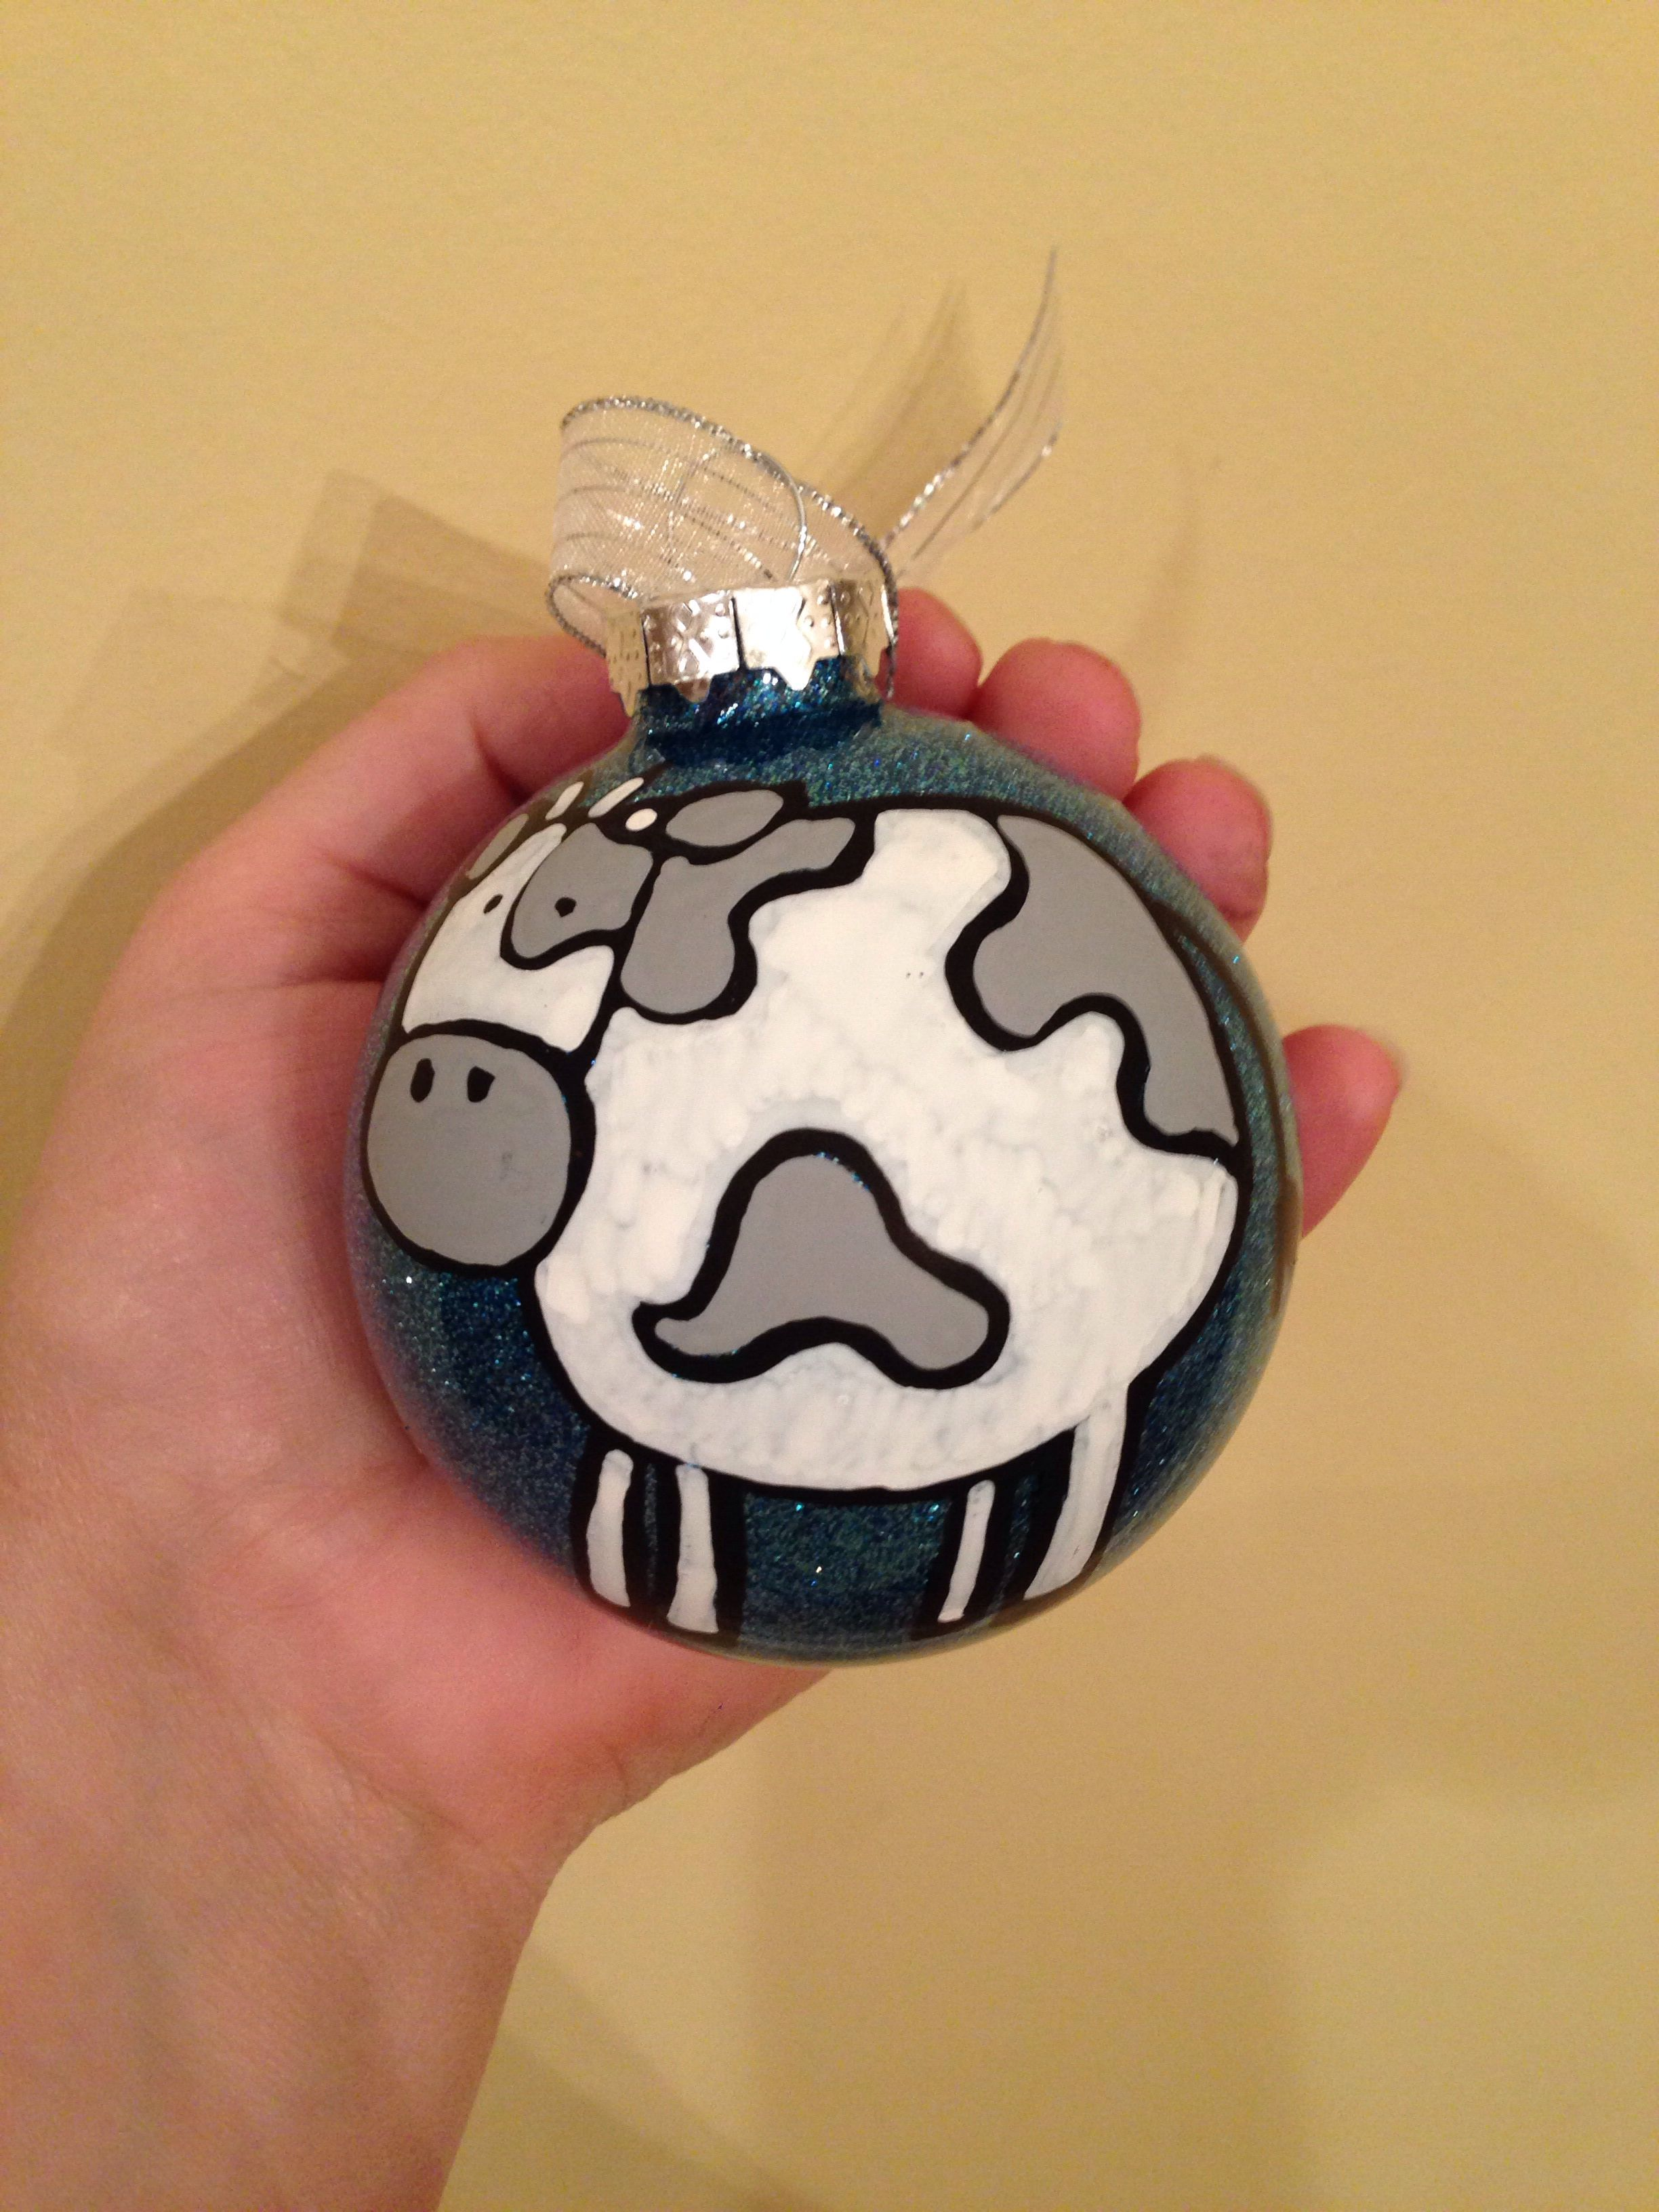 I want a set of these ornaments